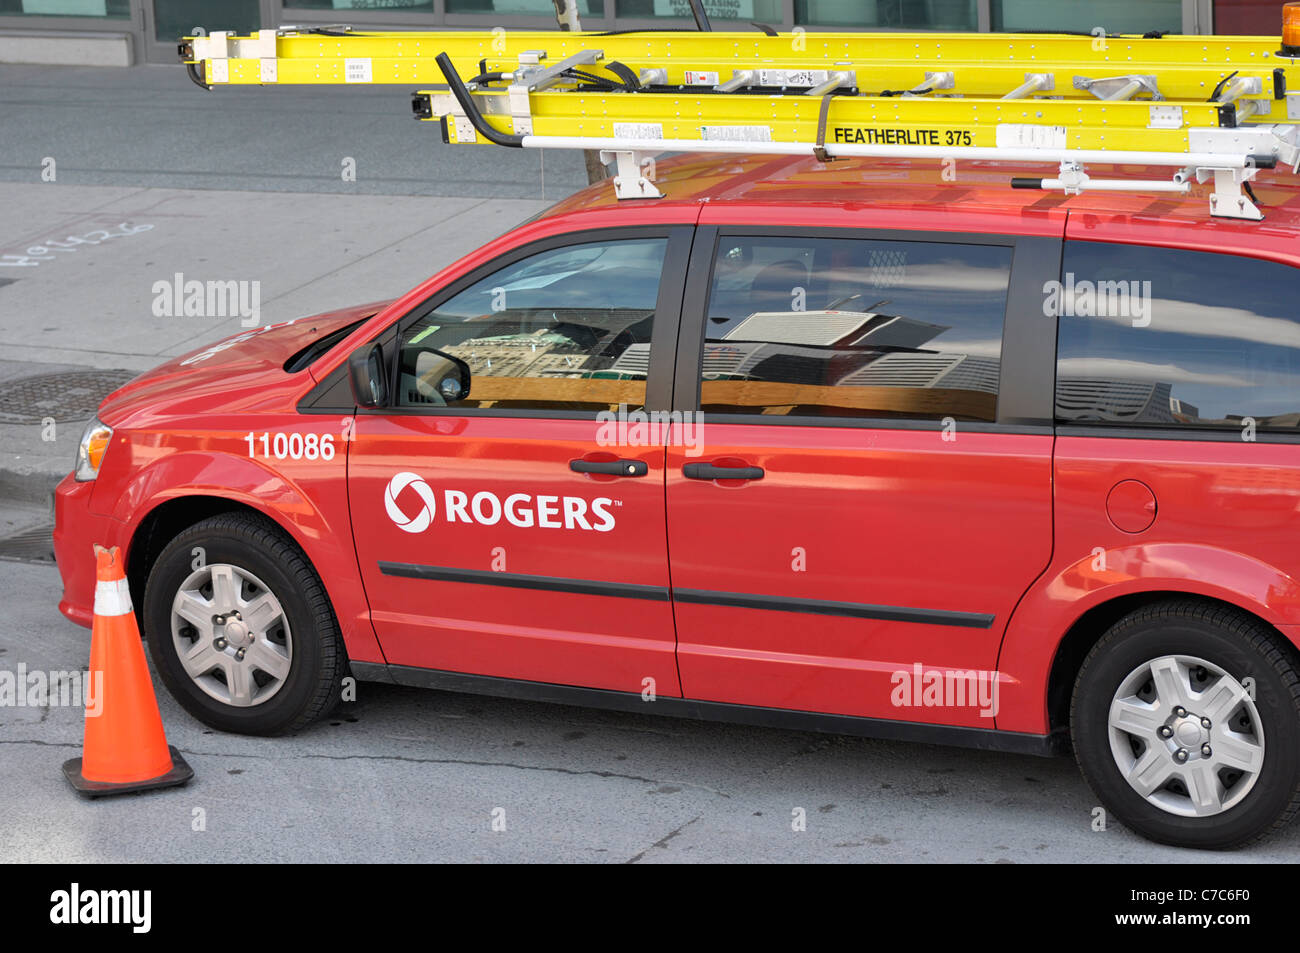 Rogers Company Van, Parked Downtown Toronto, Canada - Stock Image